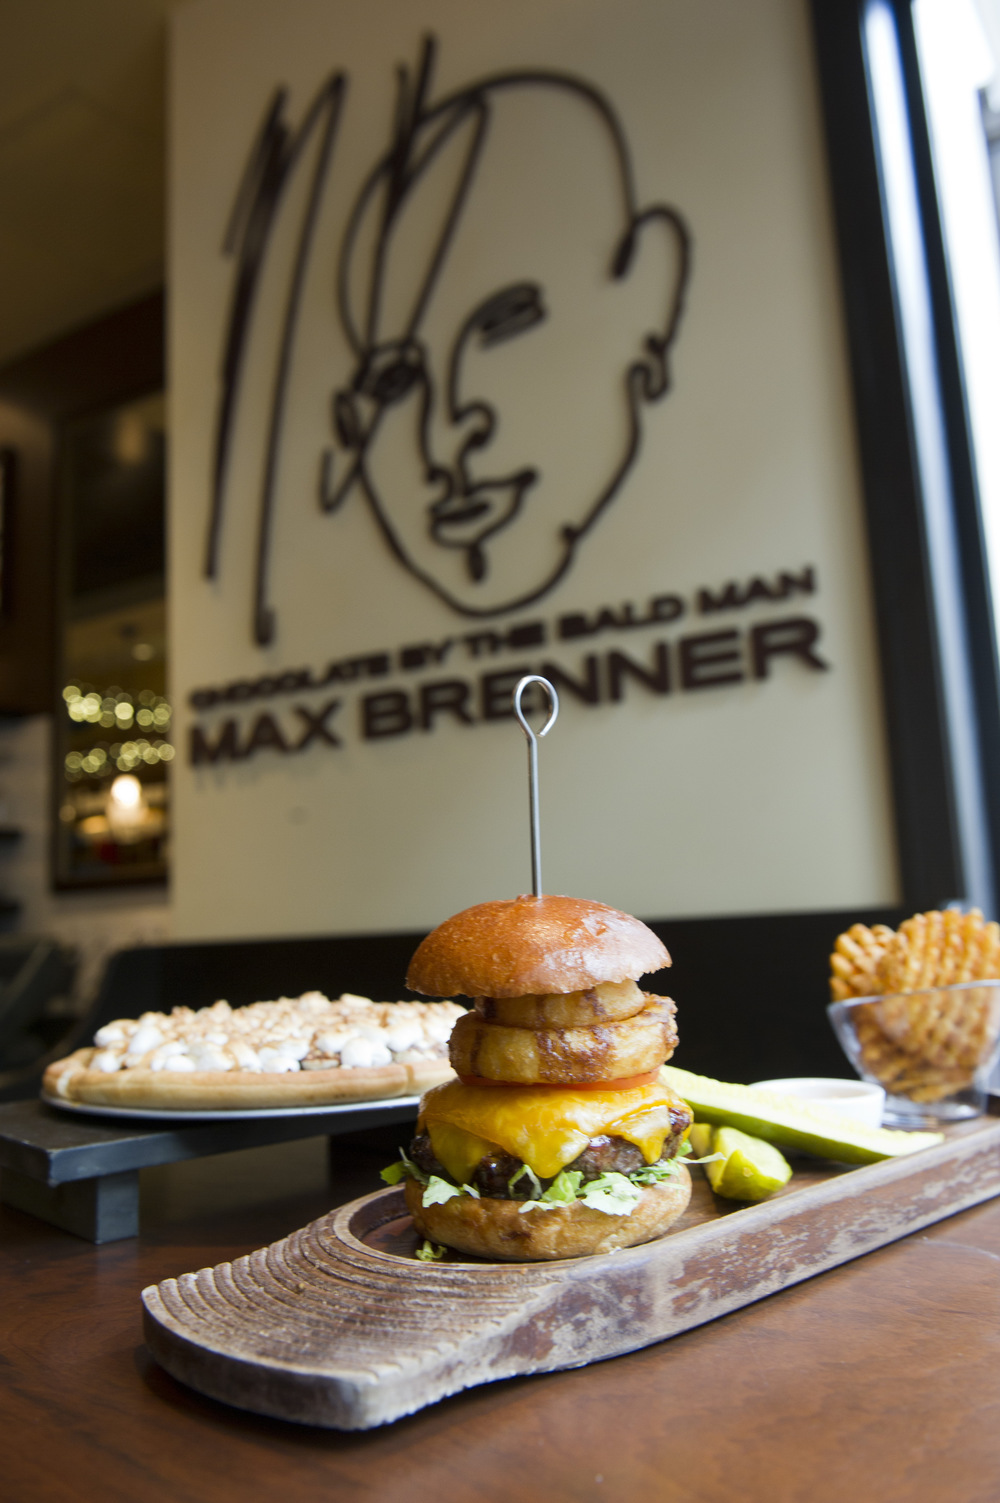 The Brenner Burger with Max's secret bbq sauce, cheddar cheese and a fried vidalia onion ring at Max Brenner's on Boylston Street November 16, 2011. Photo by Cydney Scott for Boston University Photography